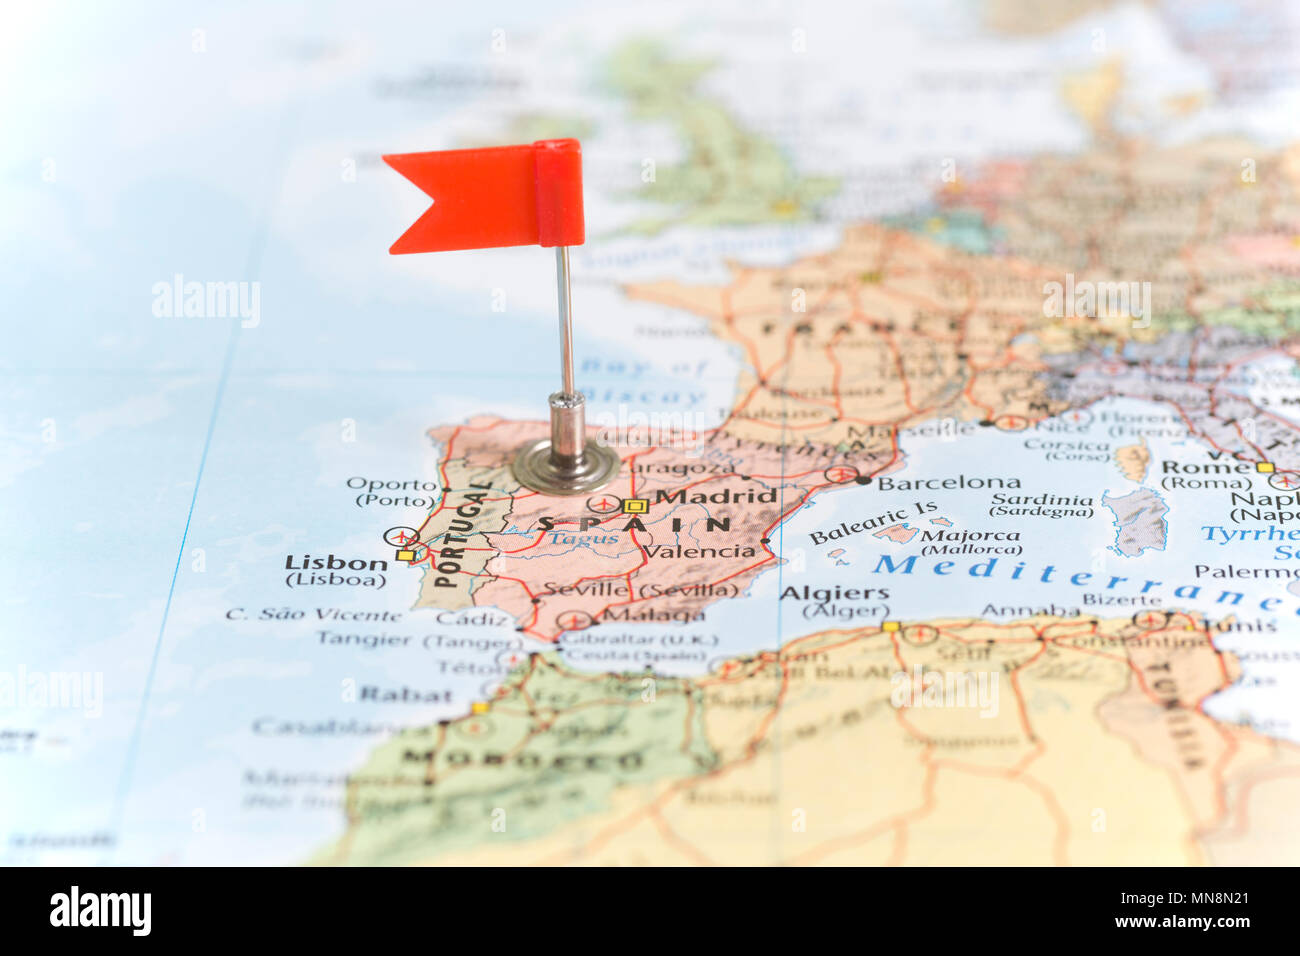 Small Map Of Spain.Small Red Flag Marking The European Country Of Spain On A World Map